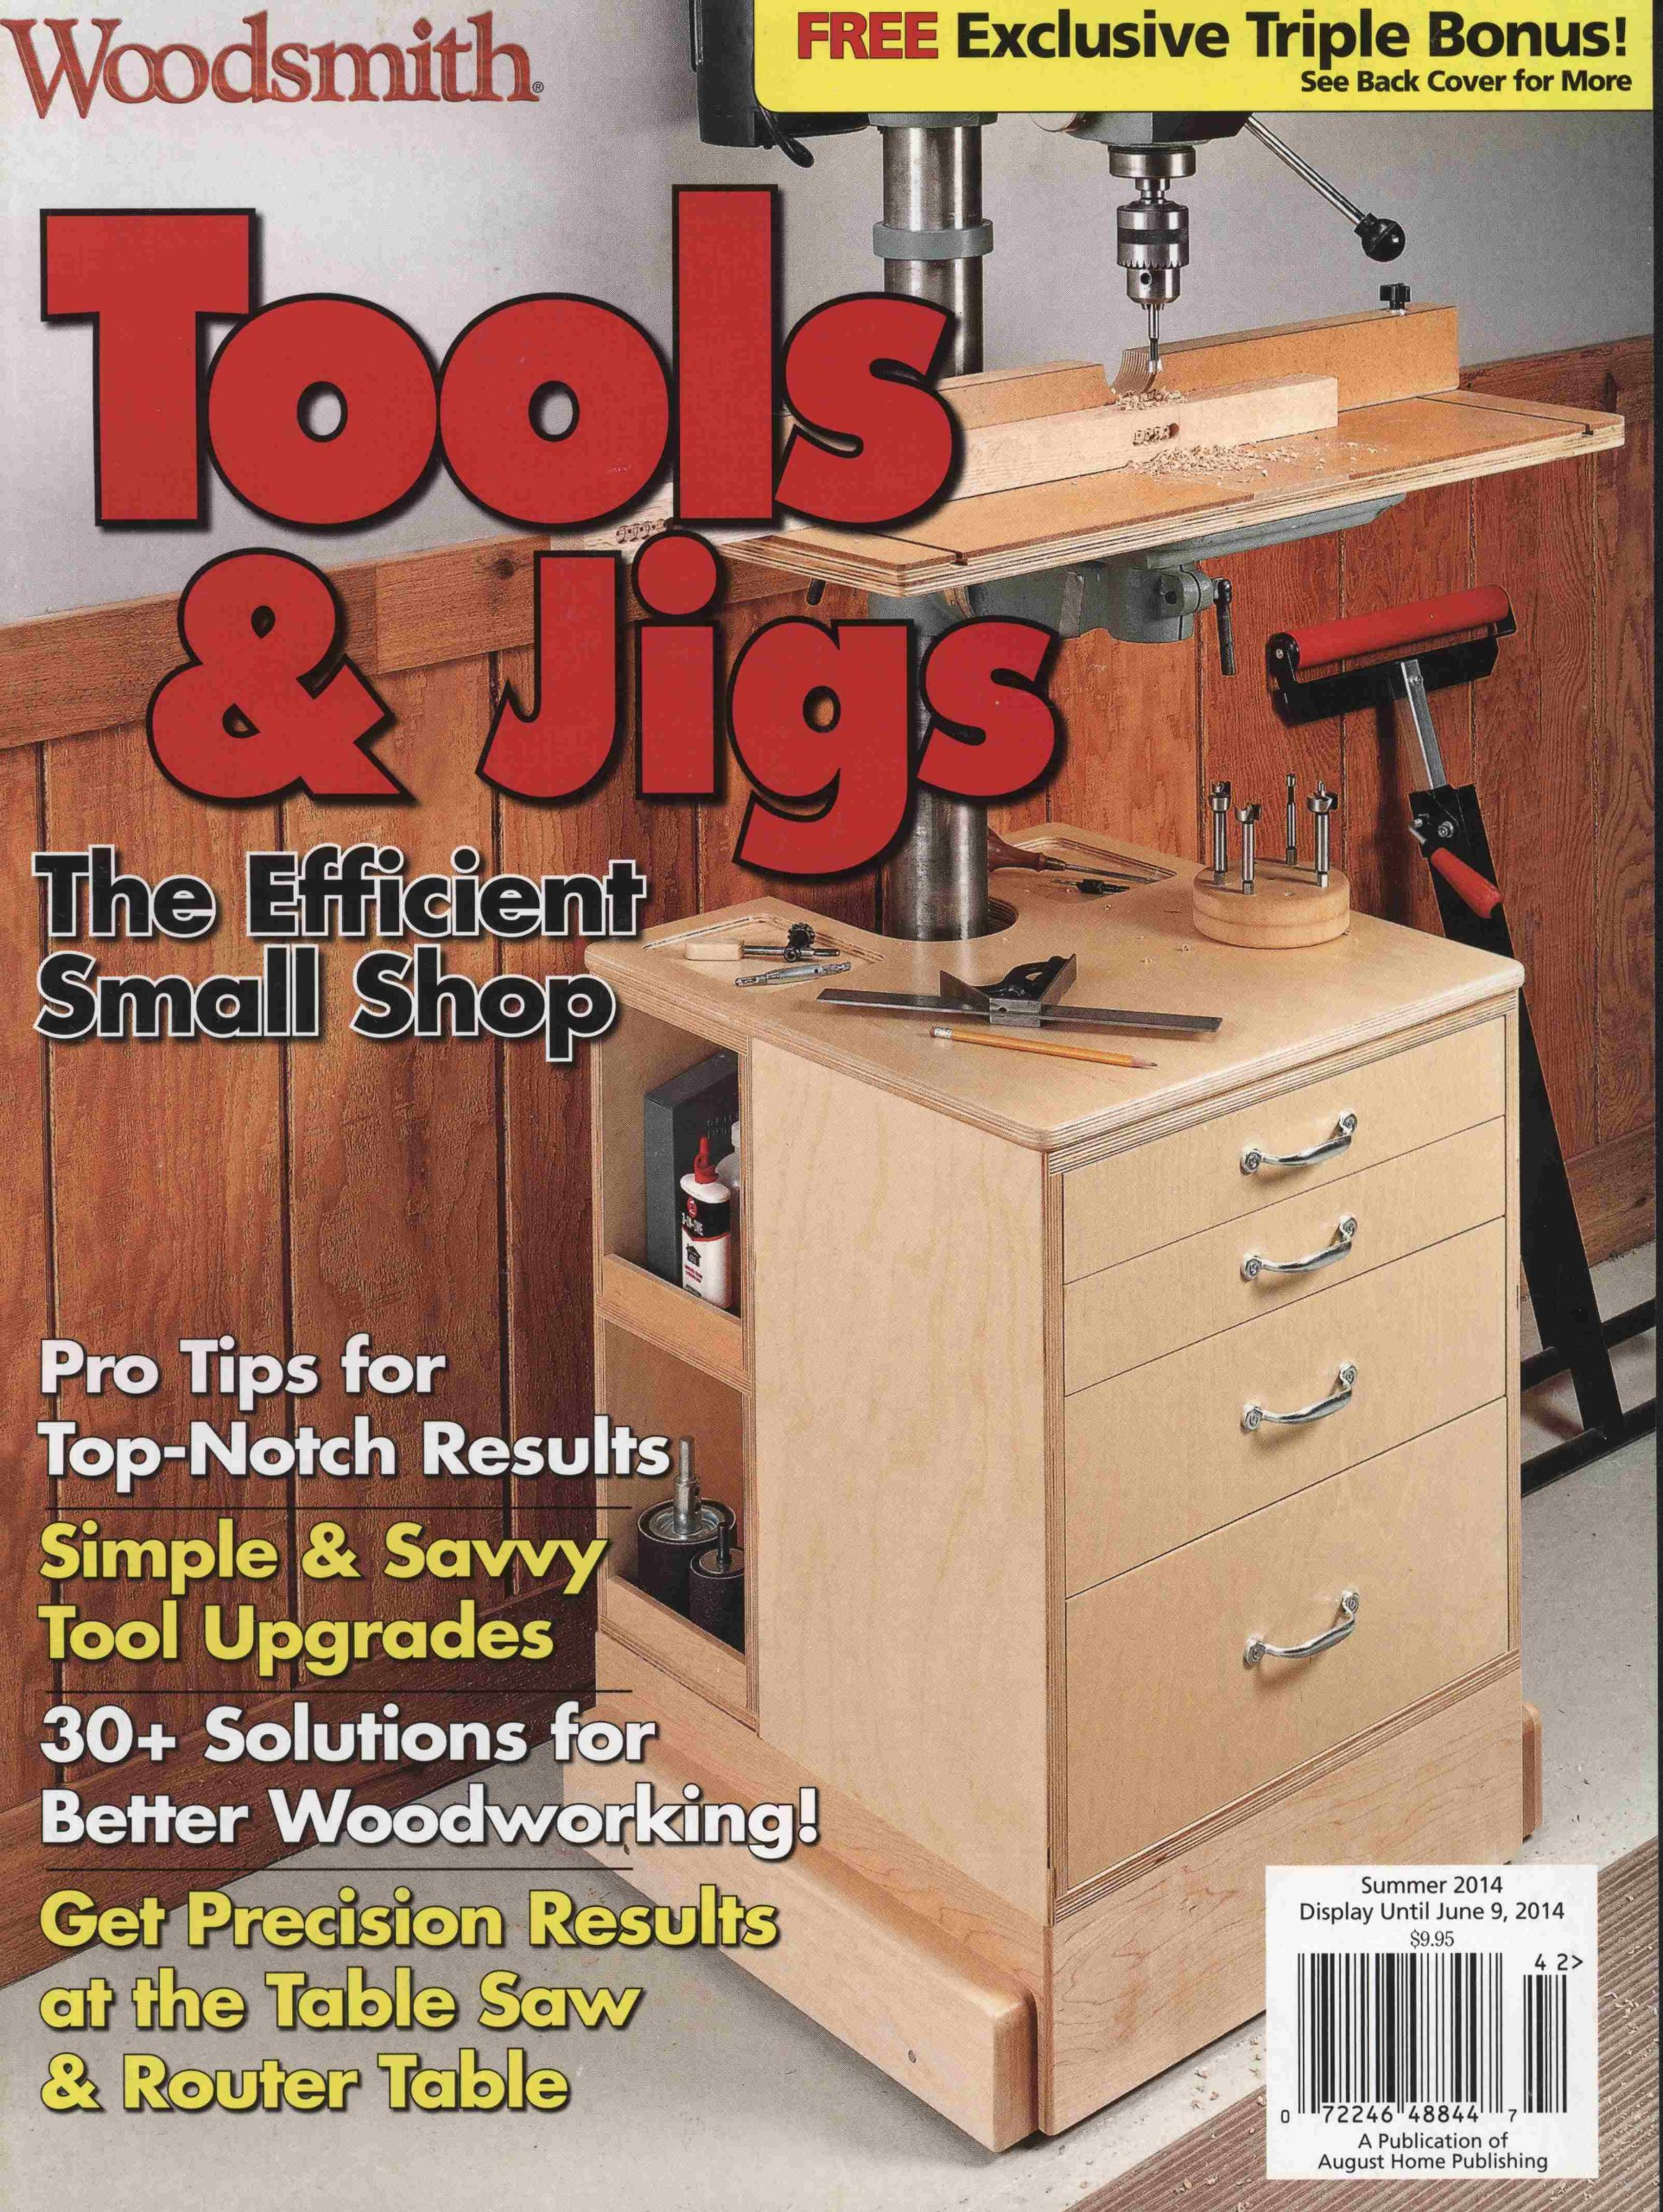 Woodsmith Specials Tools And Jigs The Efficient Small Shop